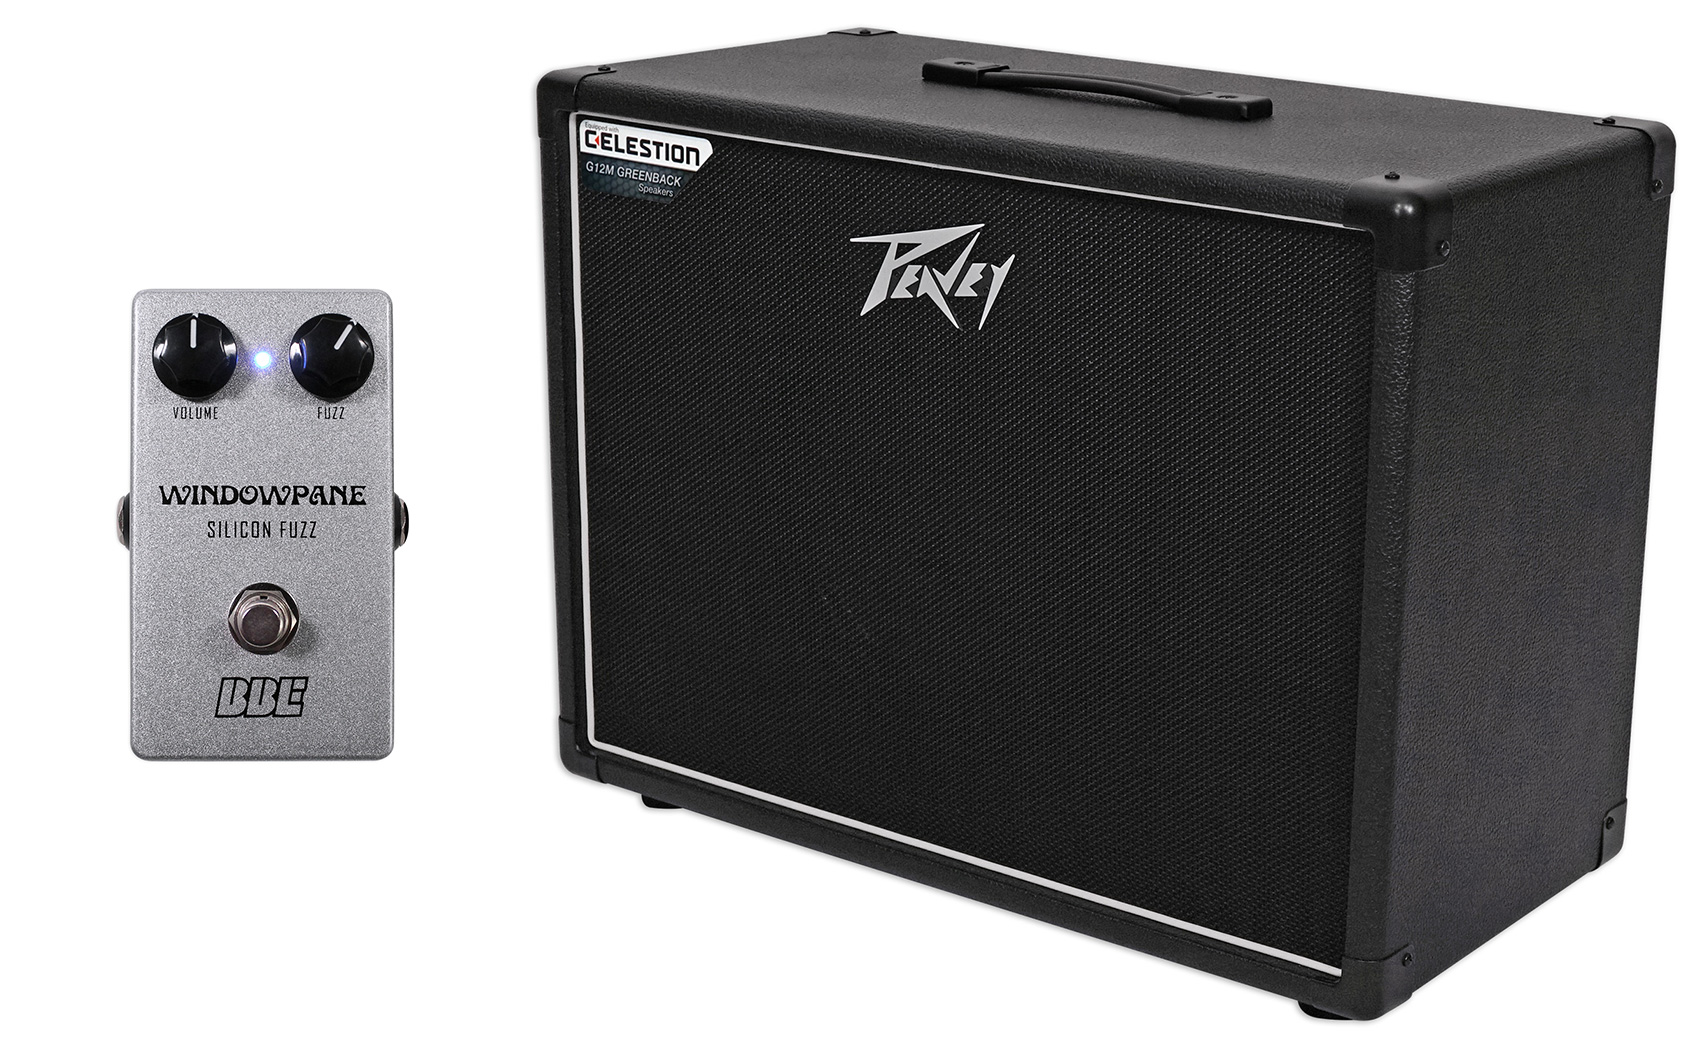 """Peavey 112-6 Extension Guitar Cabinet, 12"""" Celestion Speaker + Free Effect Pedal by Peavey"""